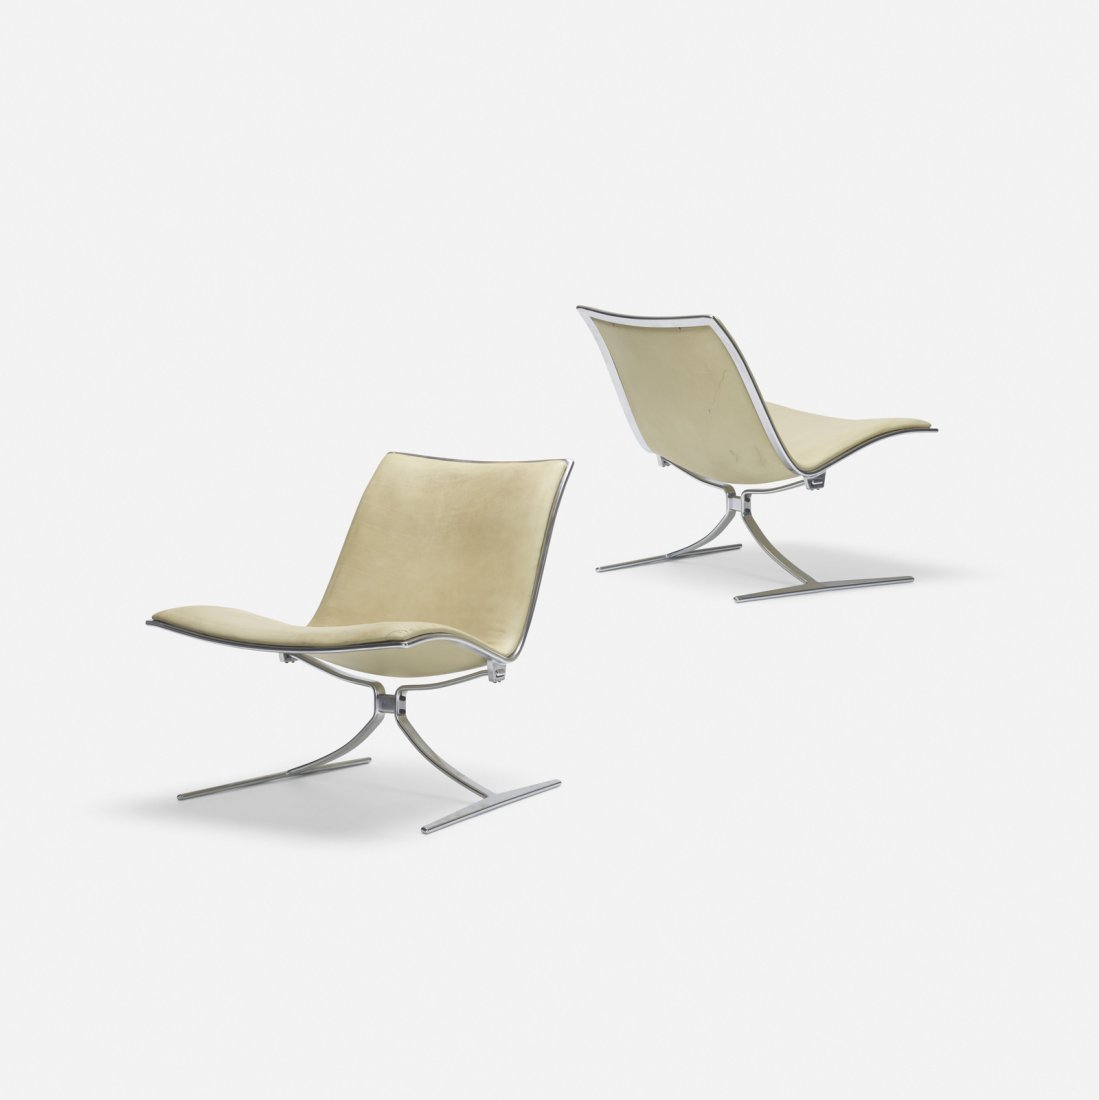 Preben Fabricius and Kastholm, Skater chairs, pair